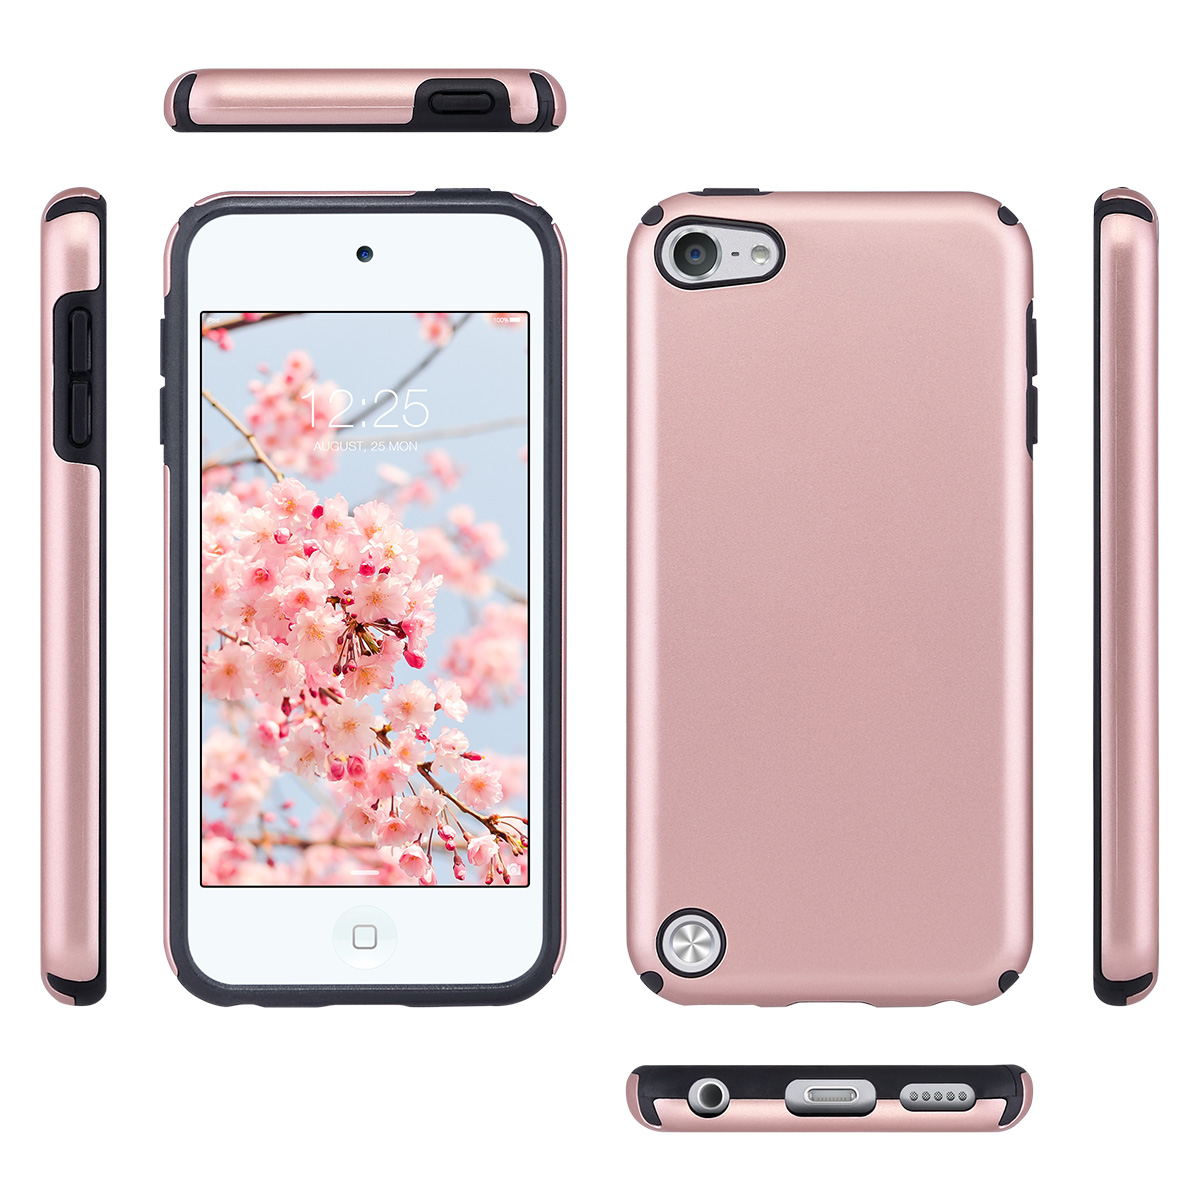 Hybrid-Hard-Protective-Silicon-TPU-Case-for-Apple-iPod-Touch-5-6th-Generation thumbnail 22